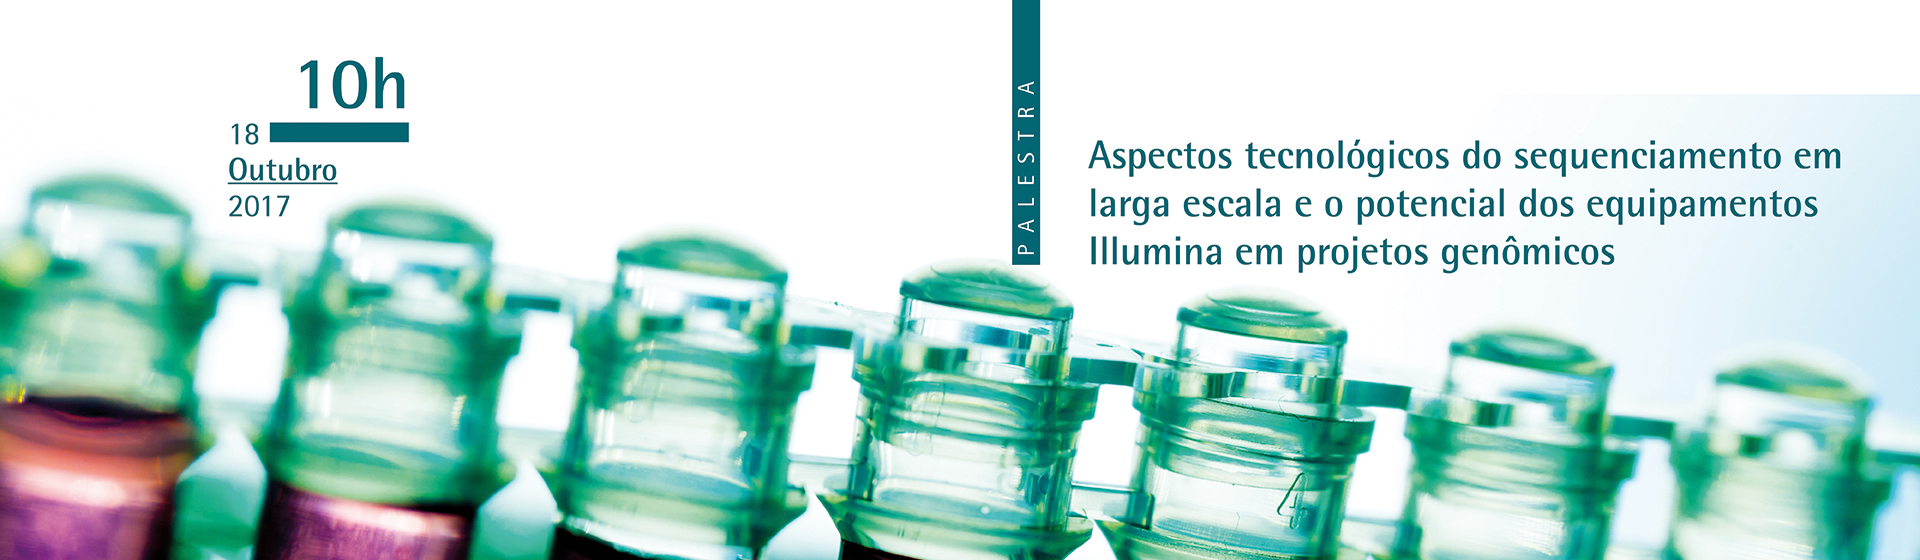 Technological Aspects of Large-Scale Sequencing and the Potential of Illumina Equipments for Genomic Projects